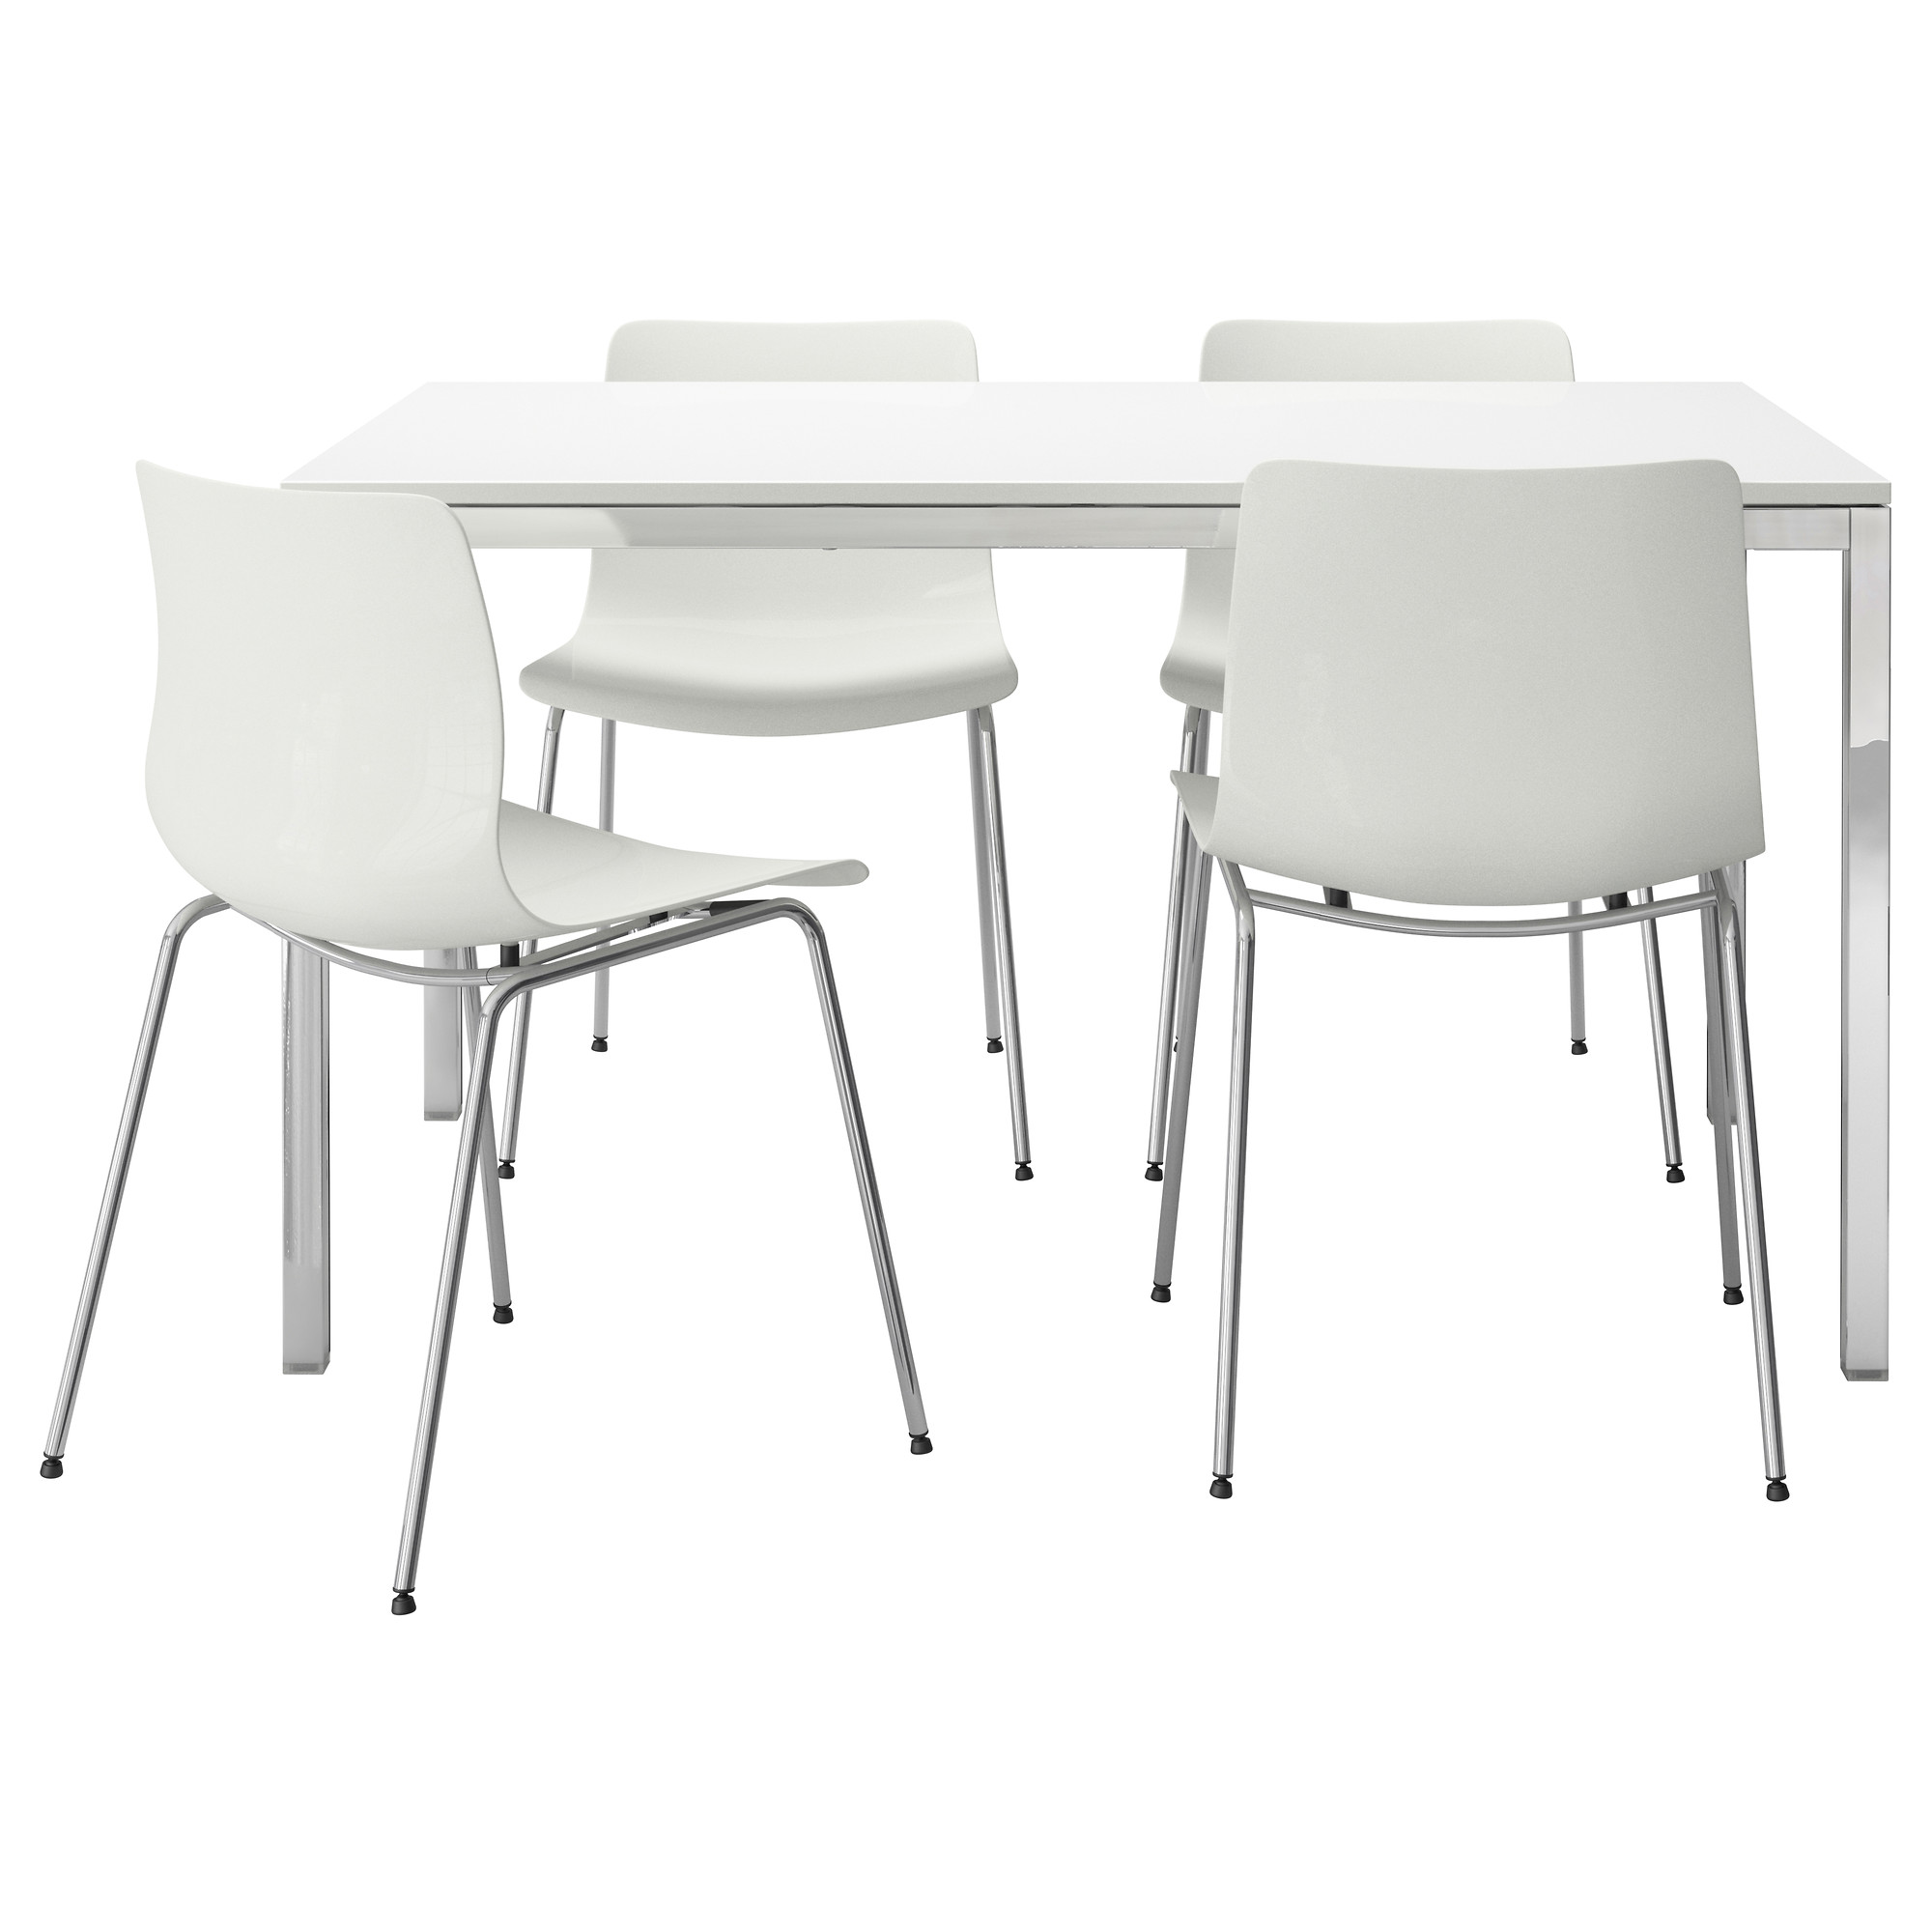 Ikea Breakfast Table: High Top Tables Ikea